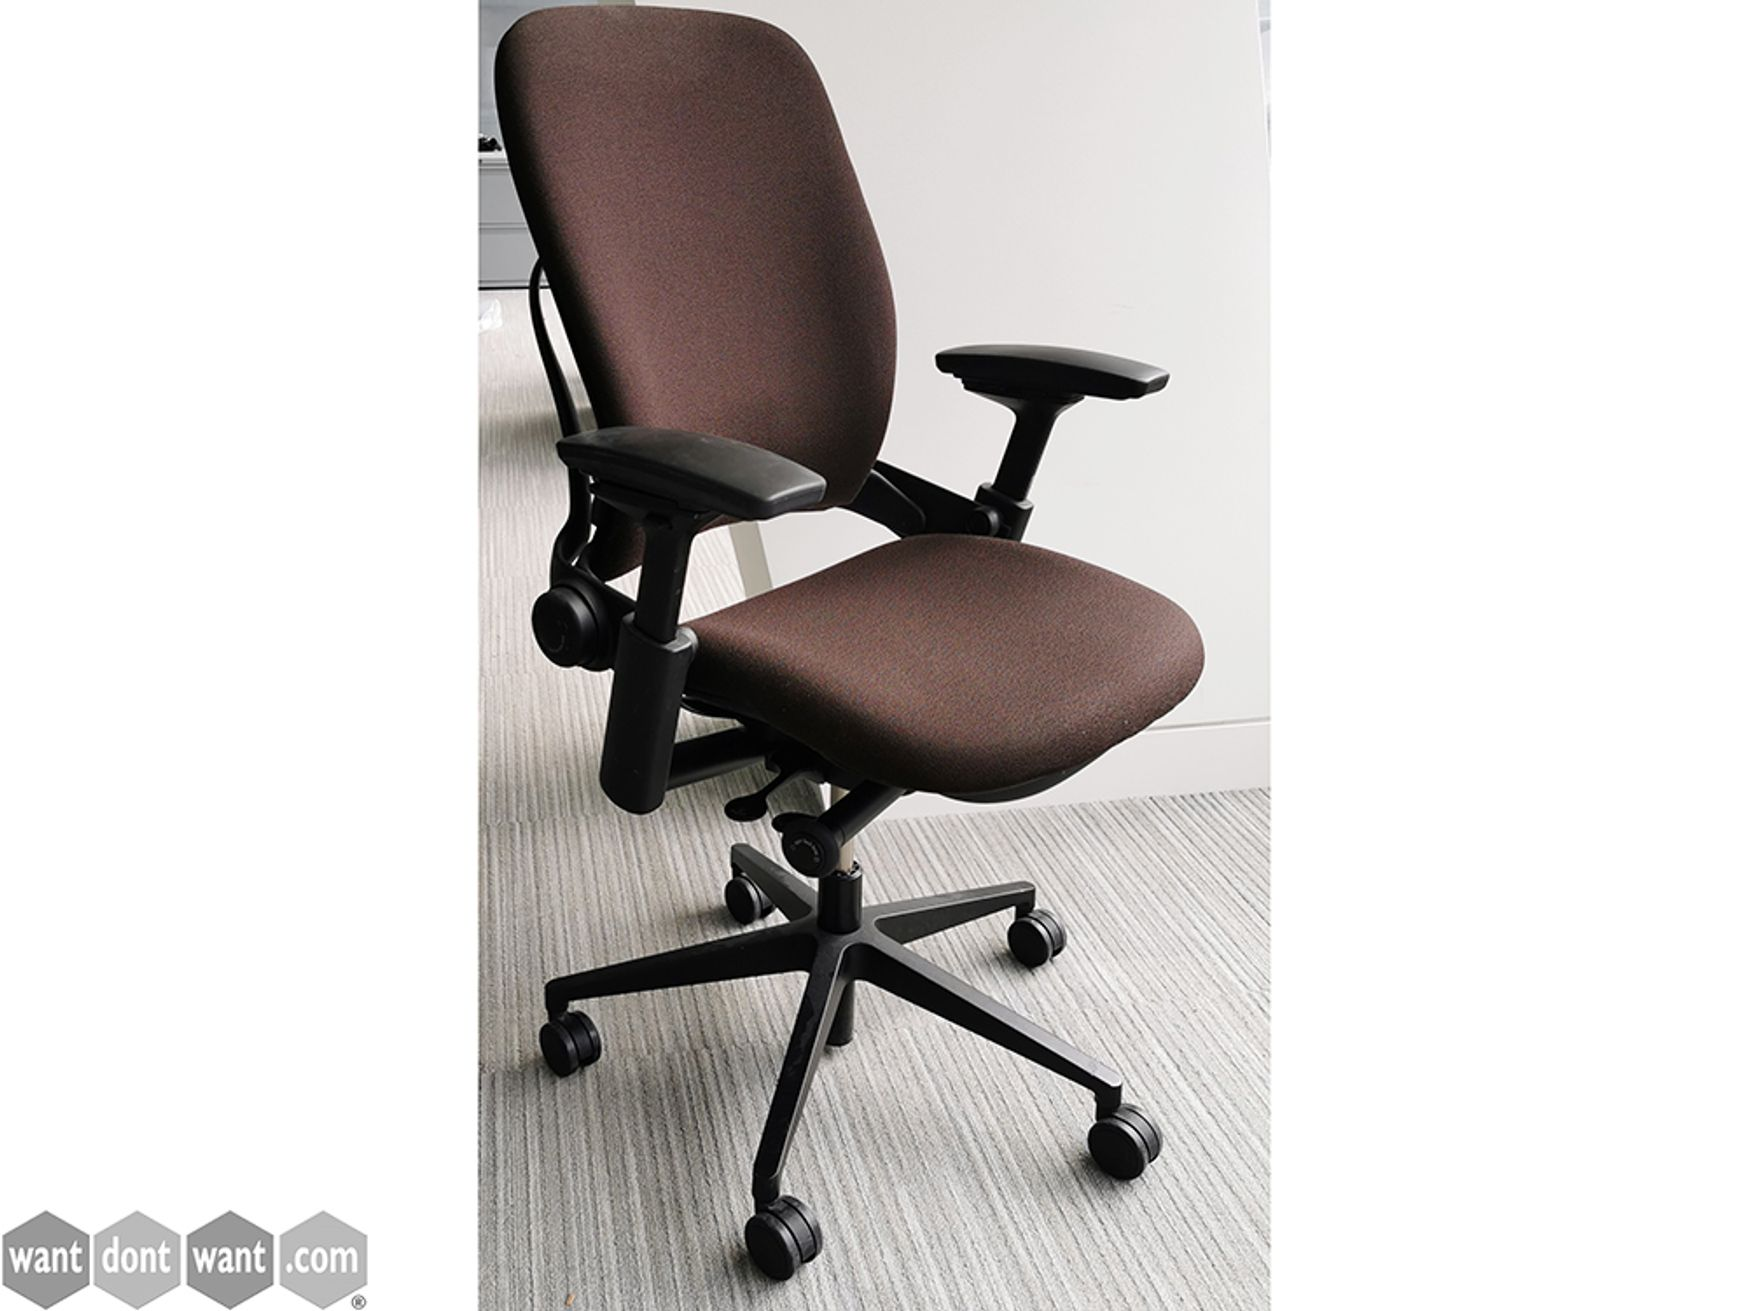 Used Steelcase Leap V2 Task Chair Upholstered in Brown Fabric